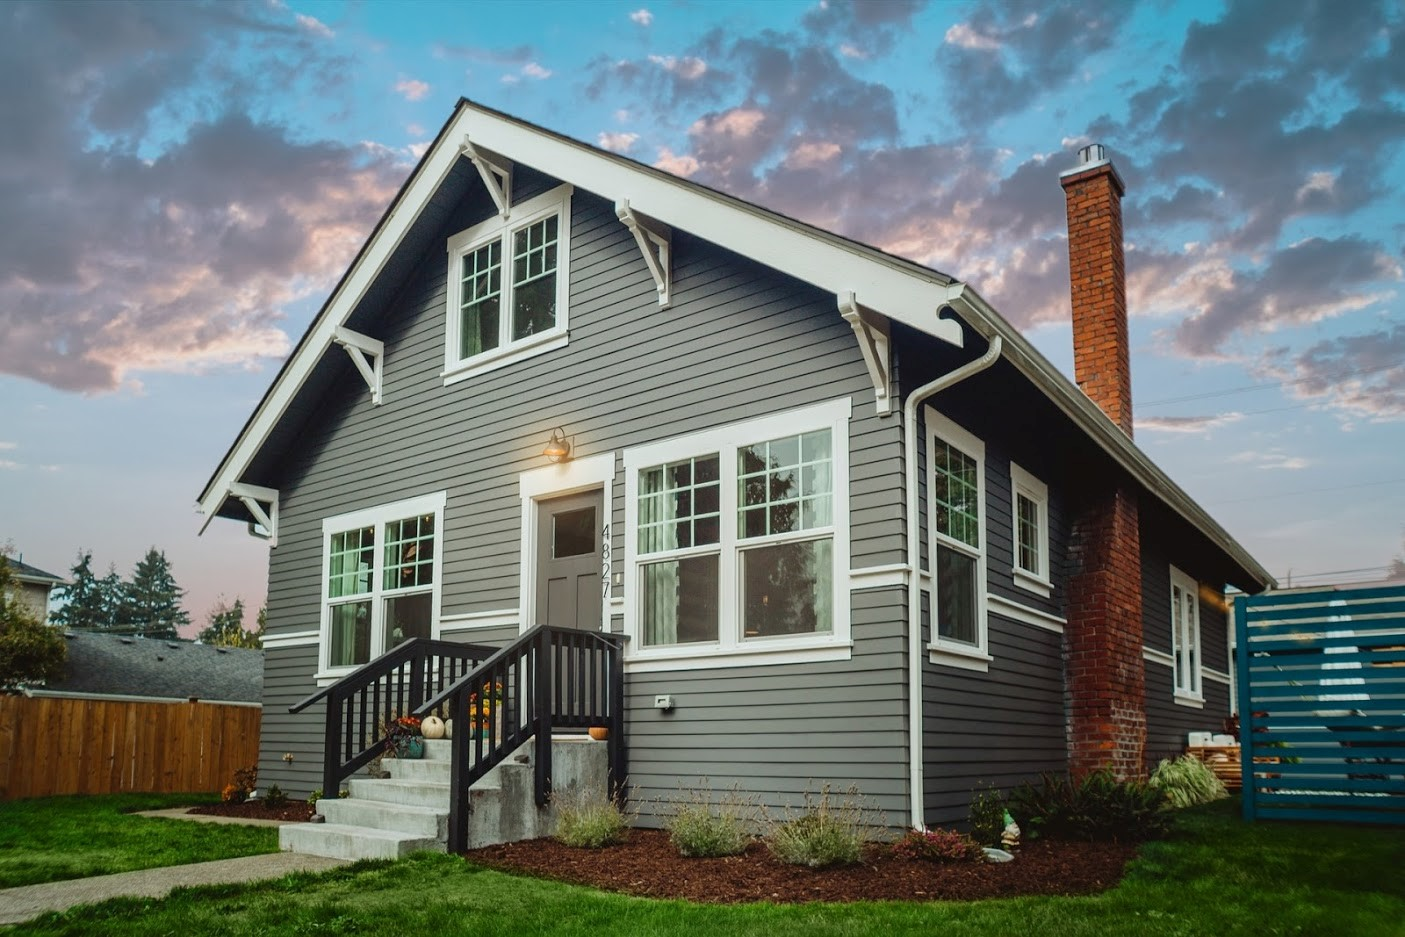 A beautiful suburban home with new siding and windows.